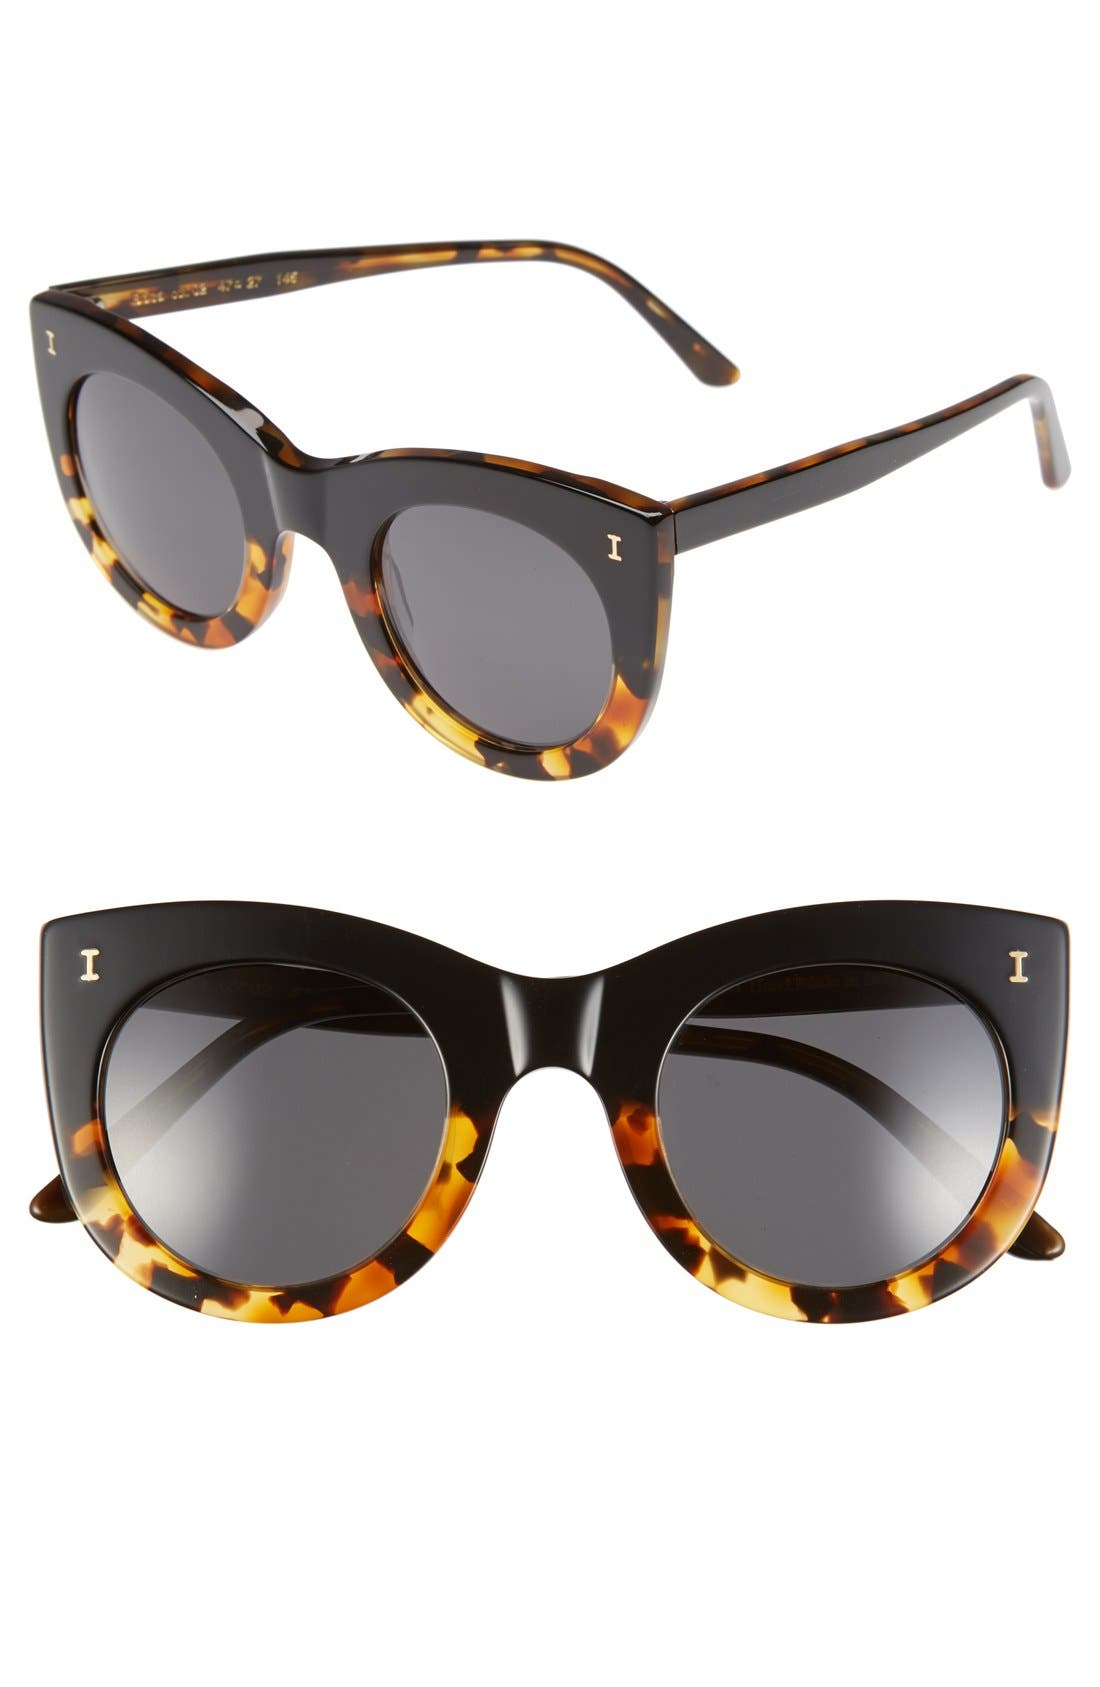 Main Image - Illesteva 'Boca' 47mm Round Sunglasses